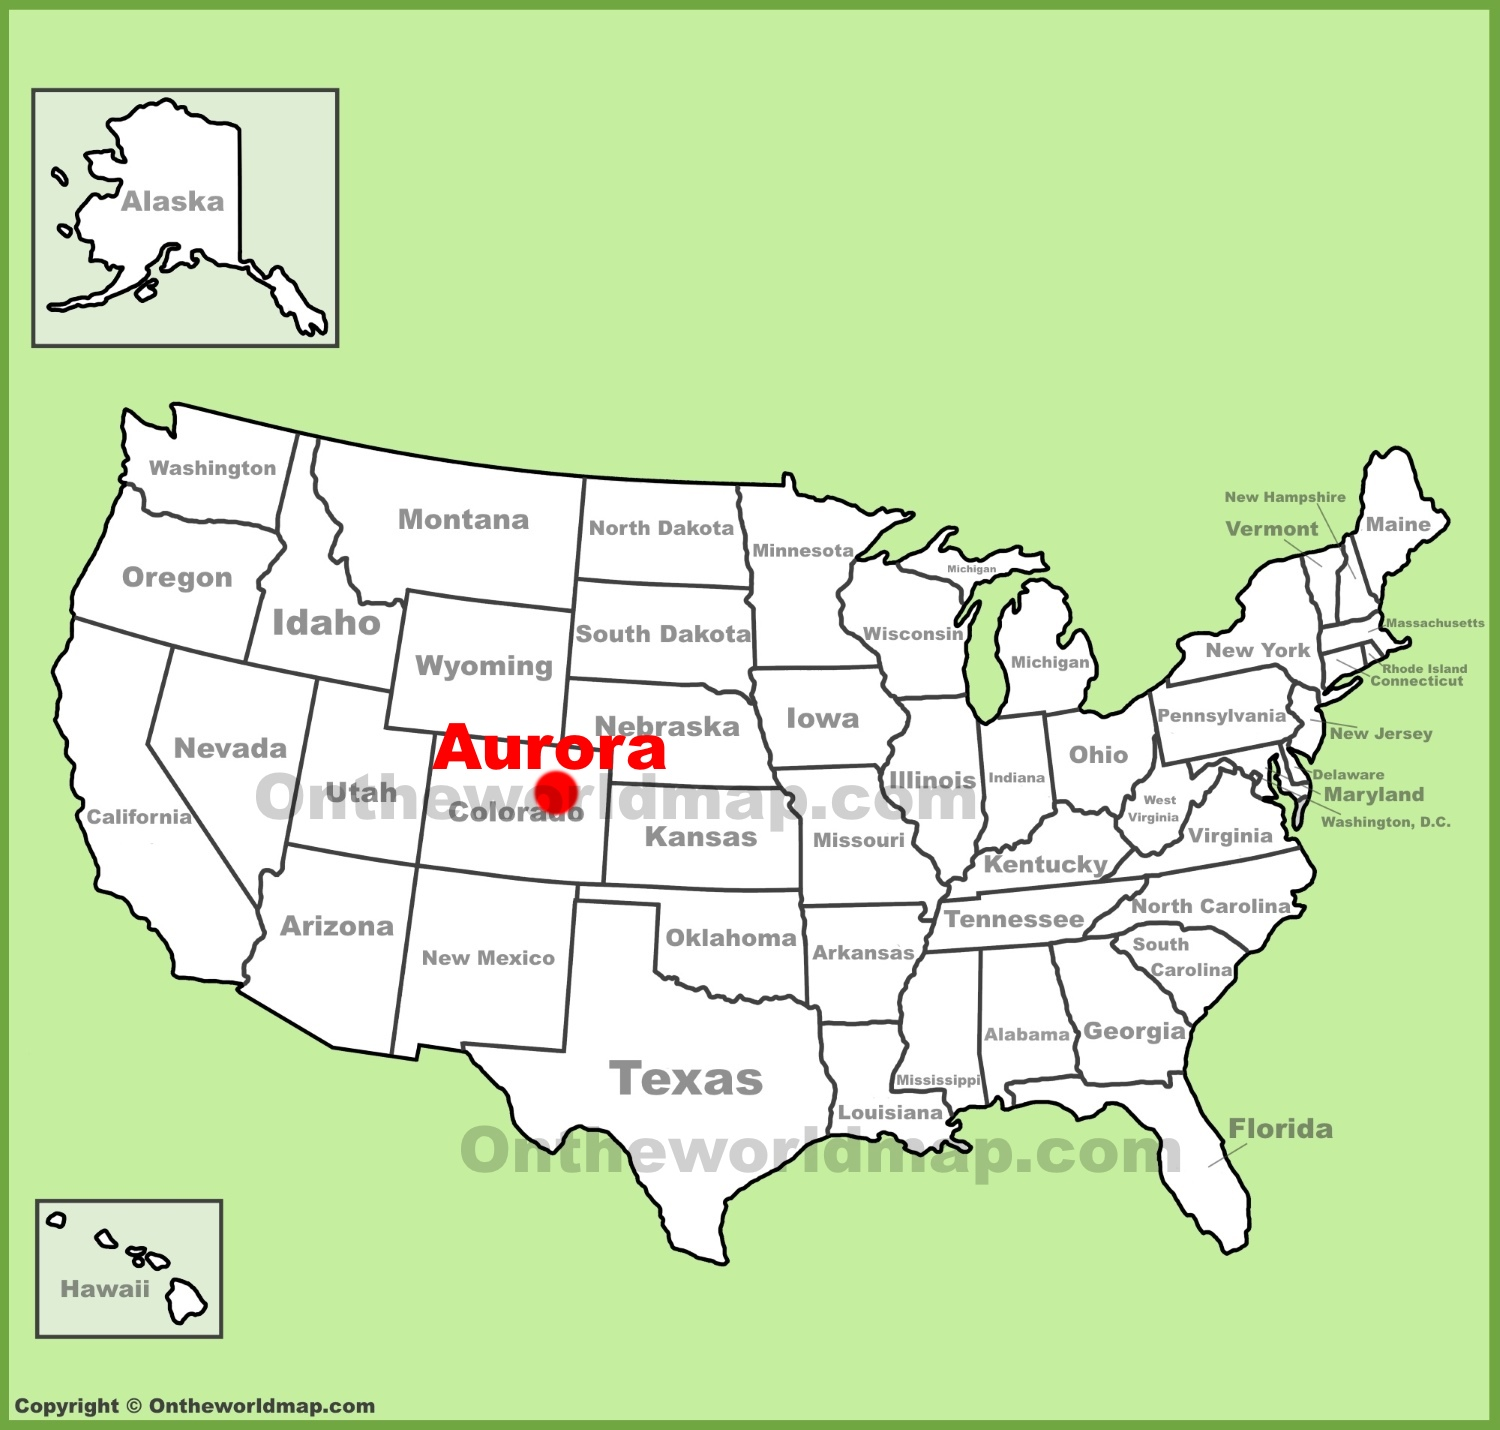 Aurora Colorado location on the US Map